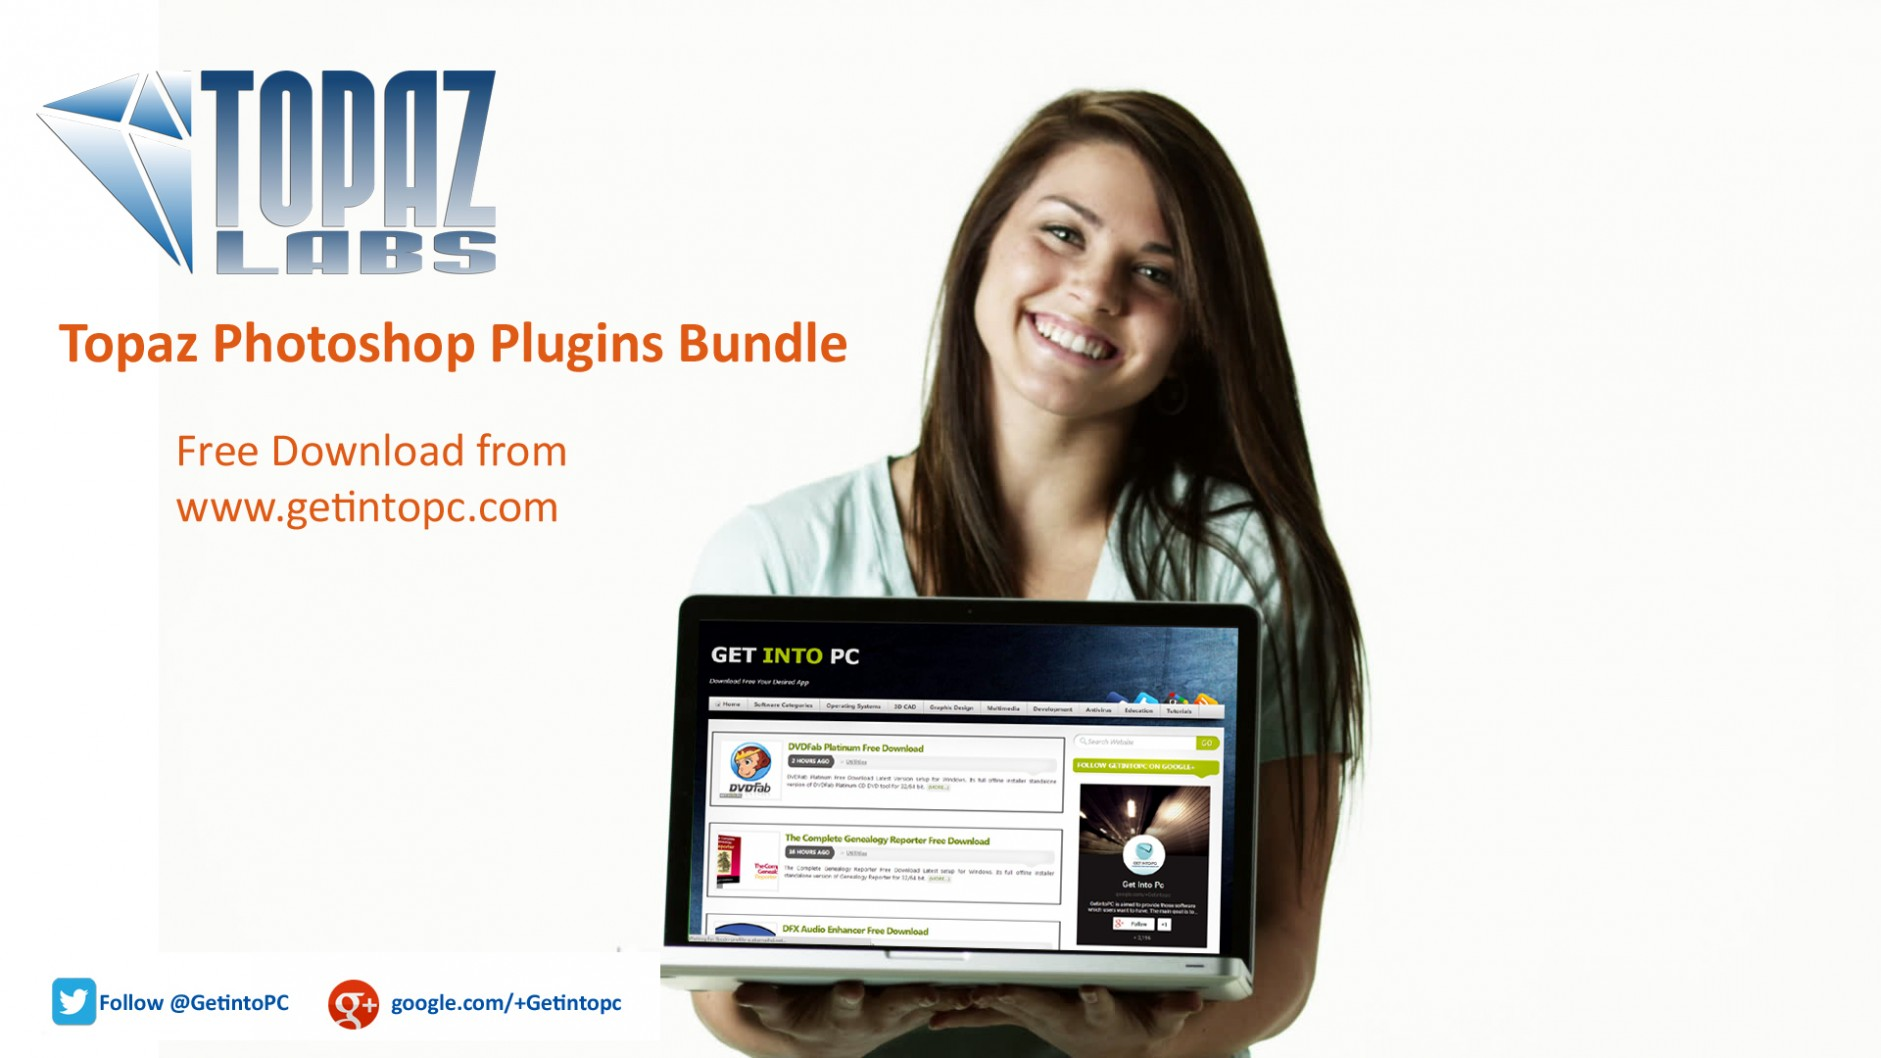 Topaz Photoshop Plugins Bundle Free Download